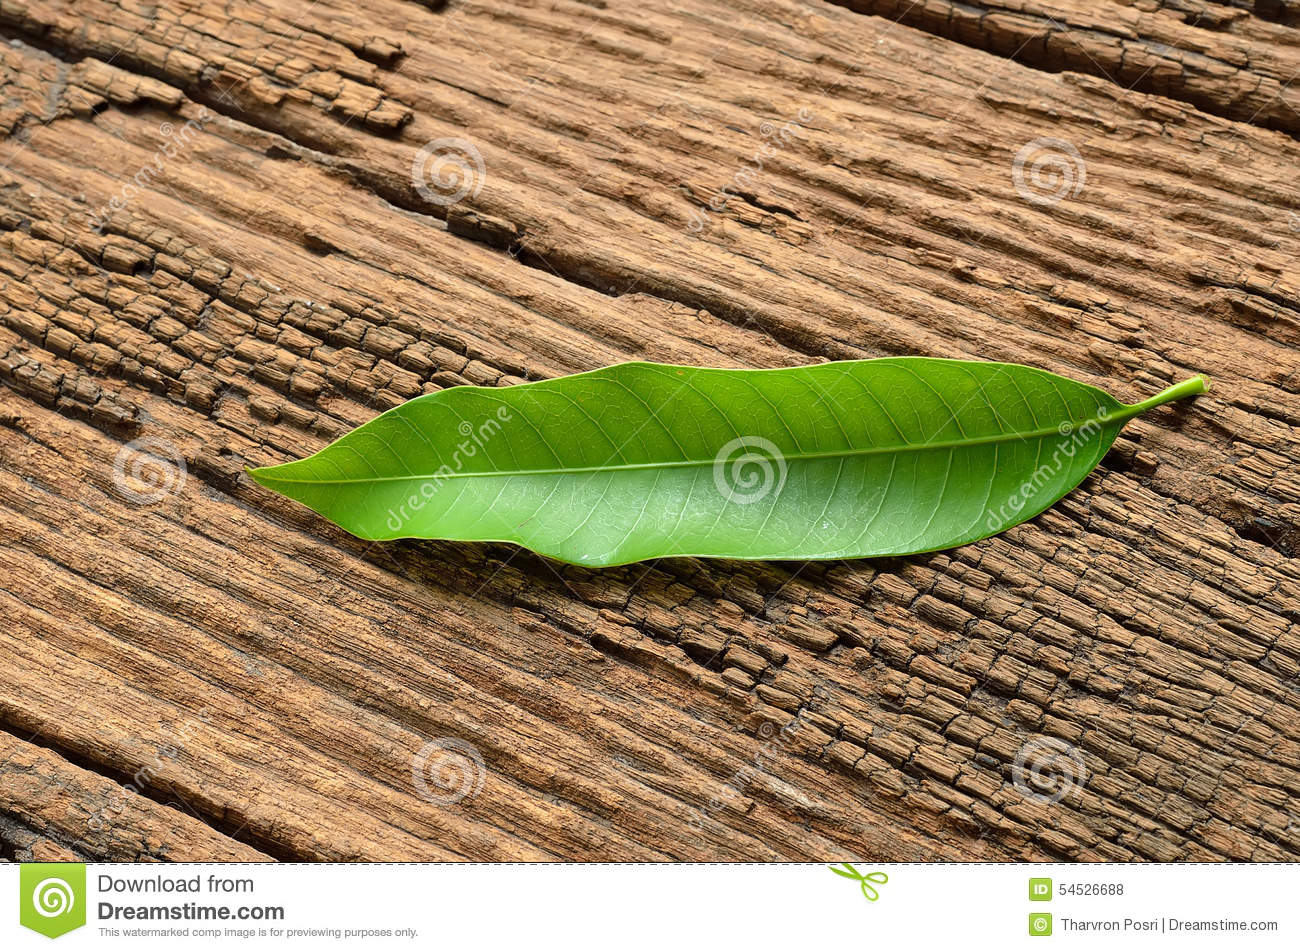 green mango leaf nature abstract background royaltyfree